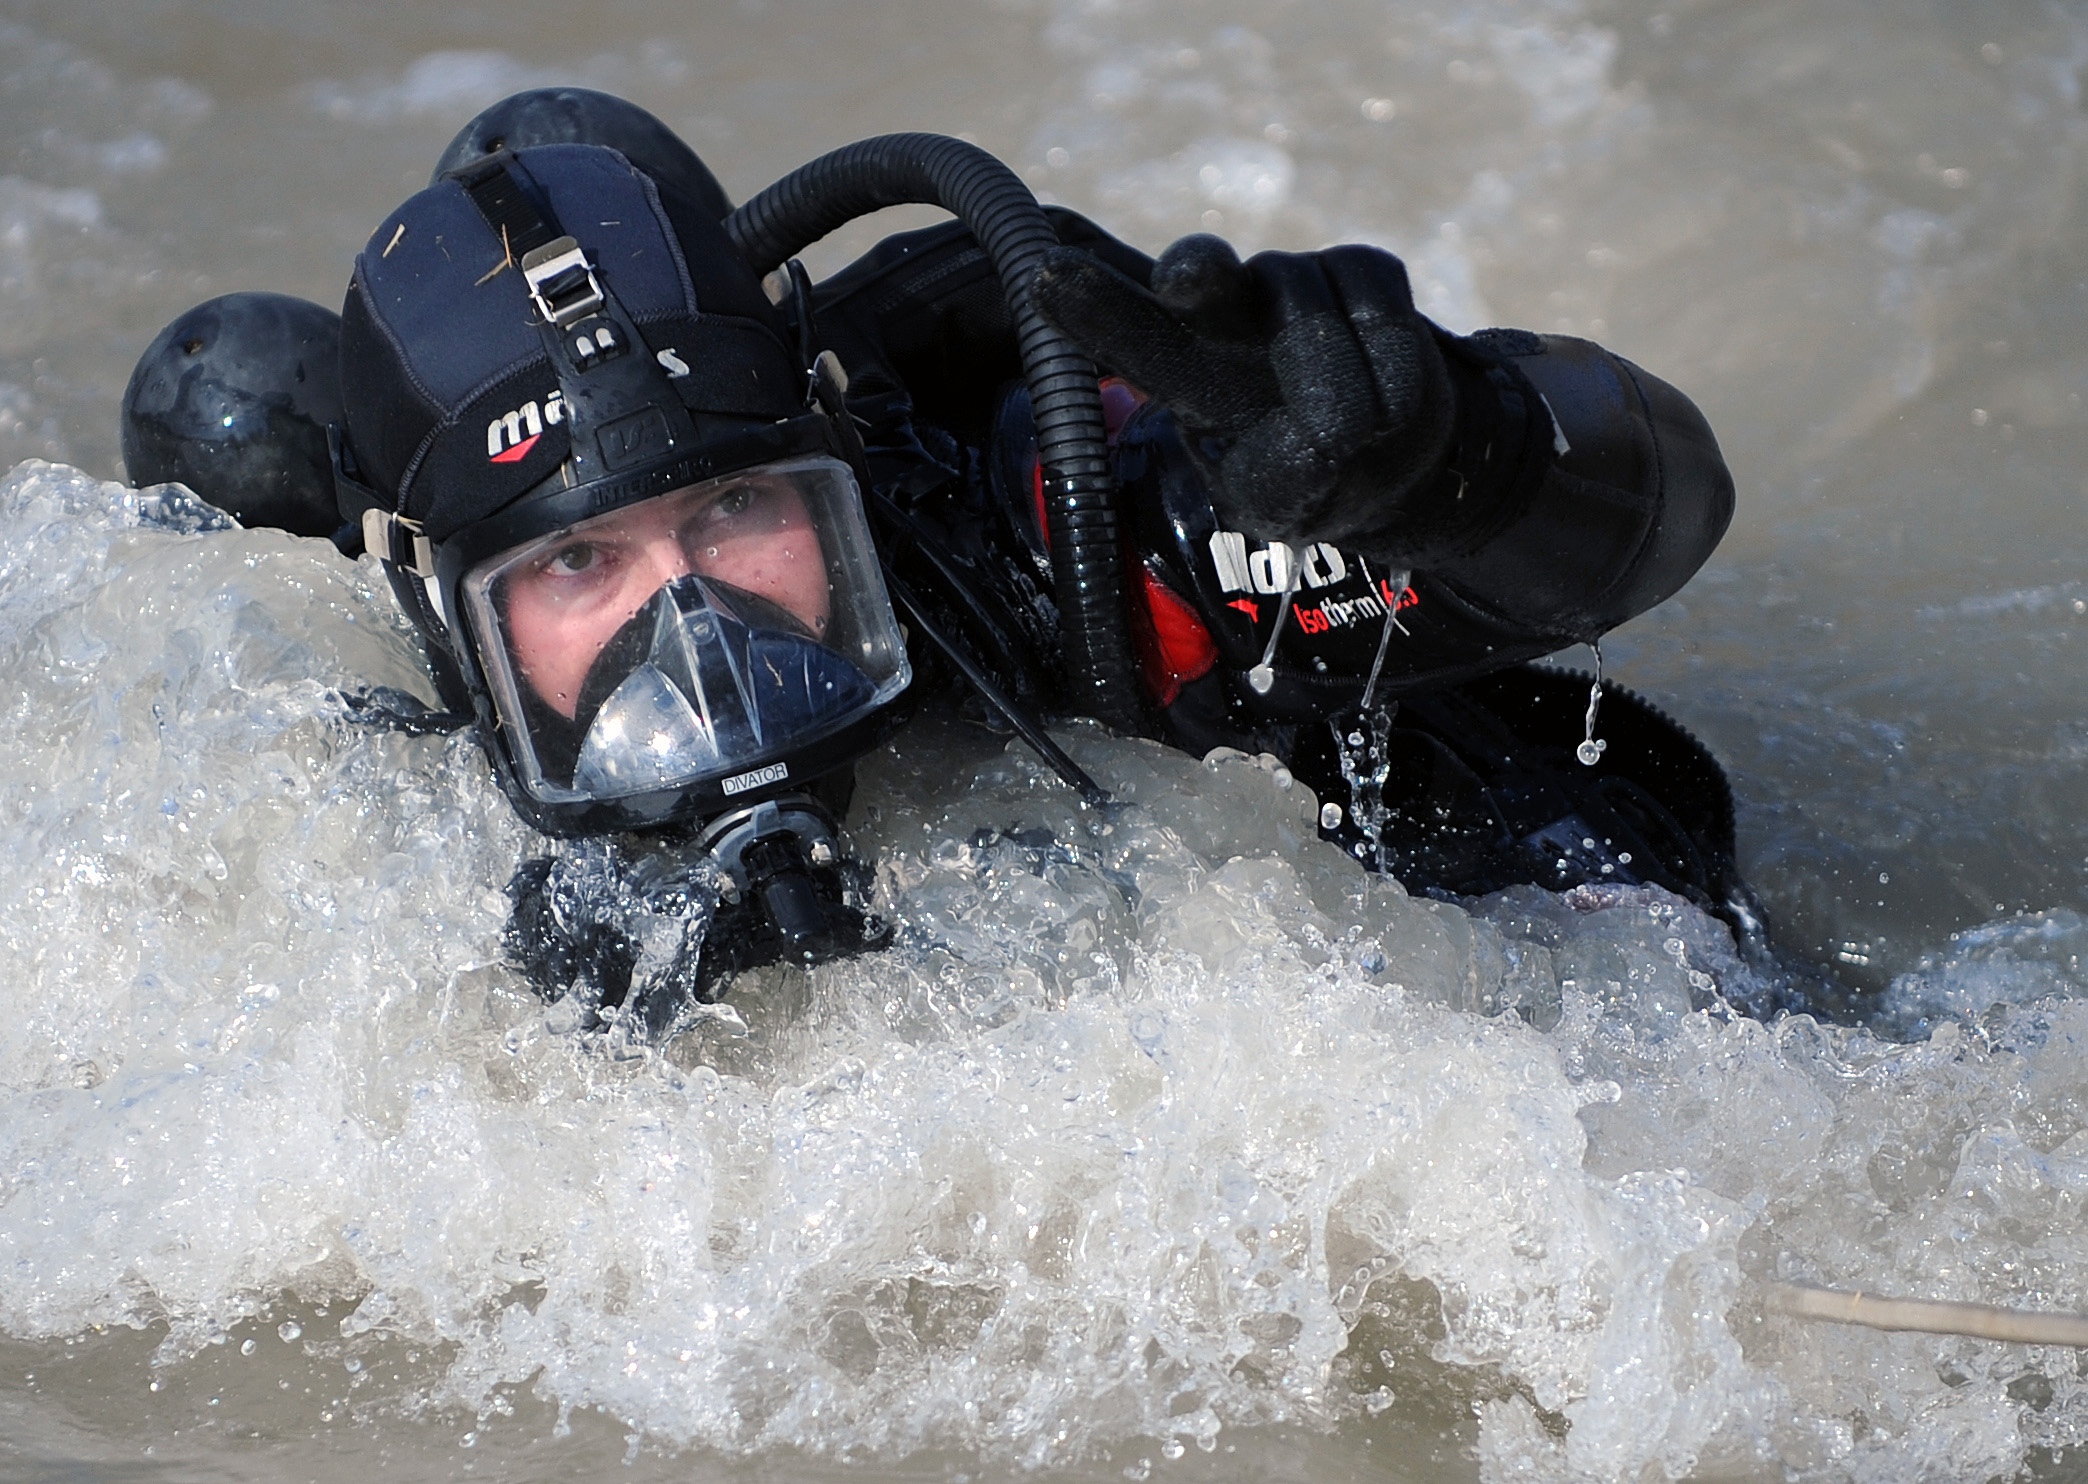 Navy diver coming out of the water wearing mask